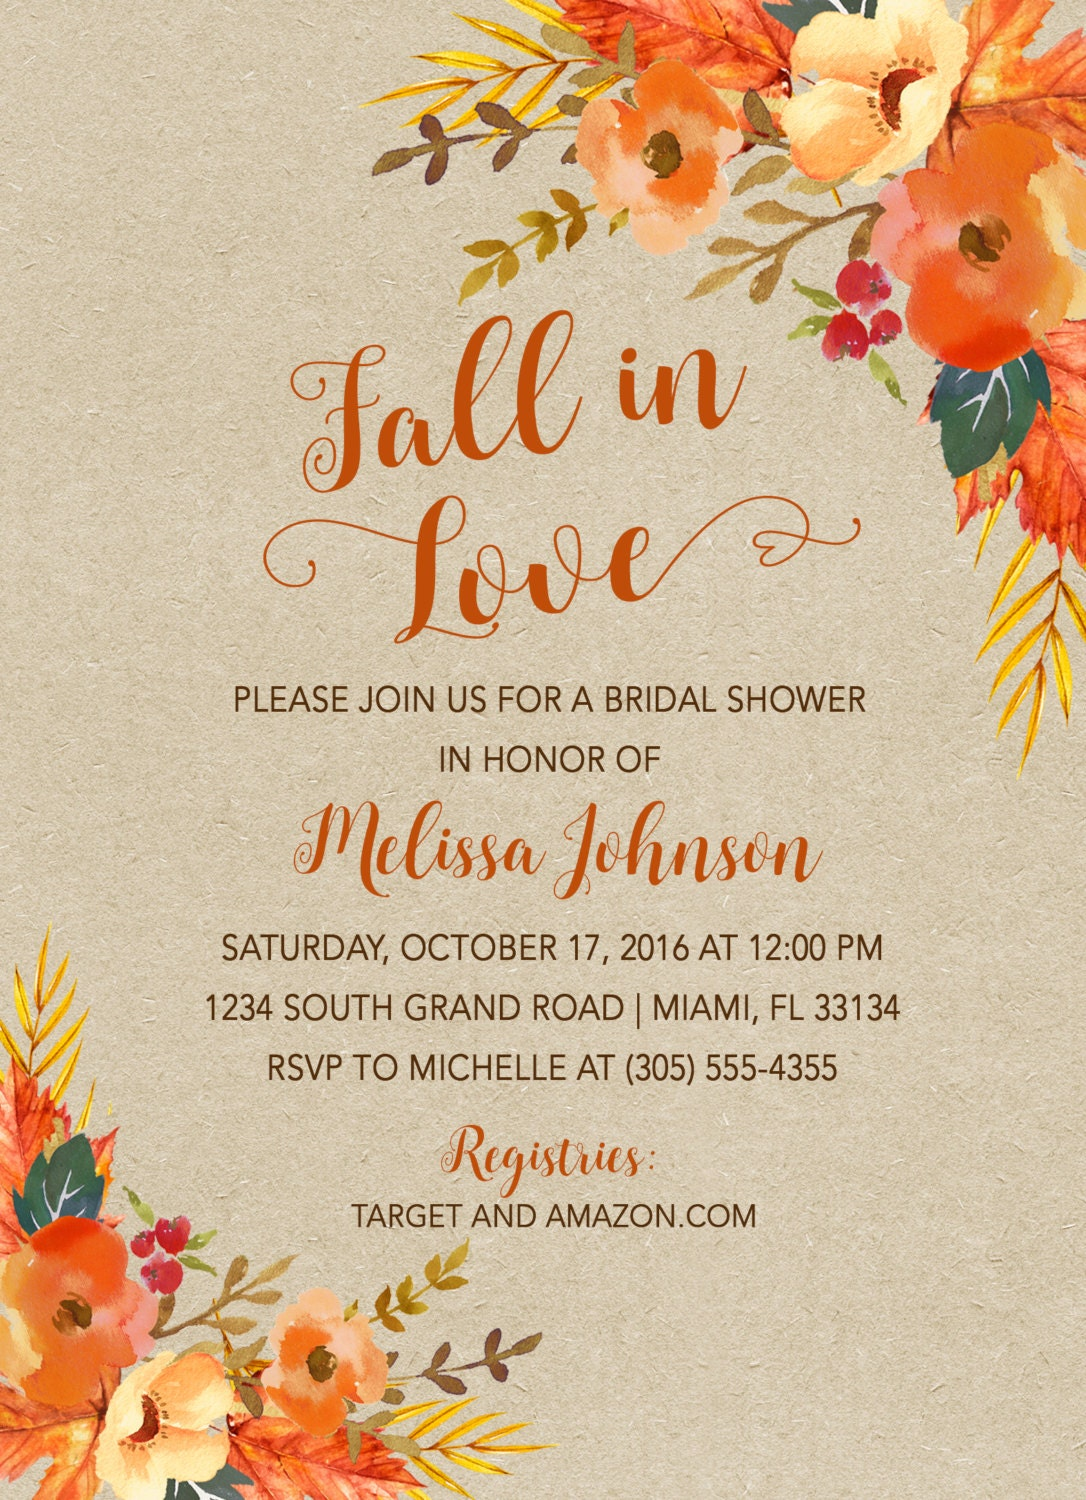 fall in love bridal shower invitation fall leaves bridal shower invitation falling in love fall bridal shower invitation fall floral